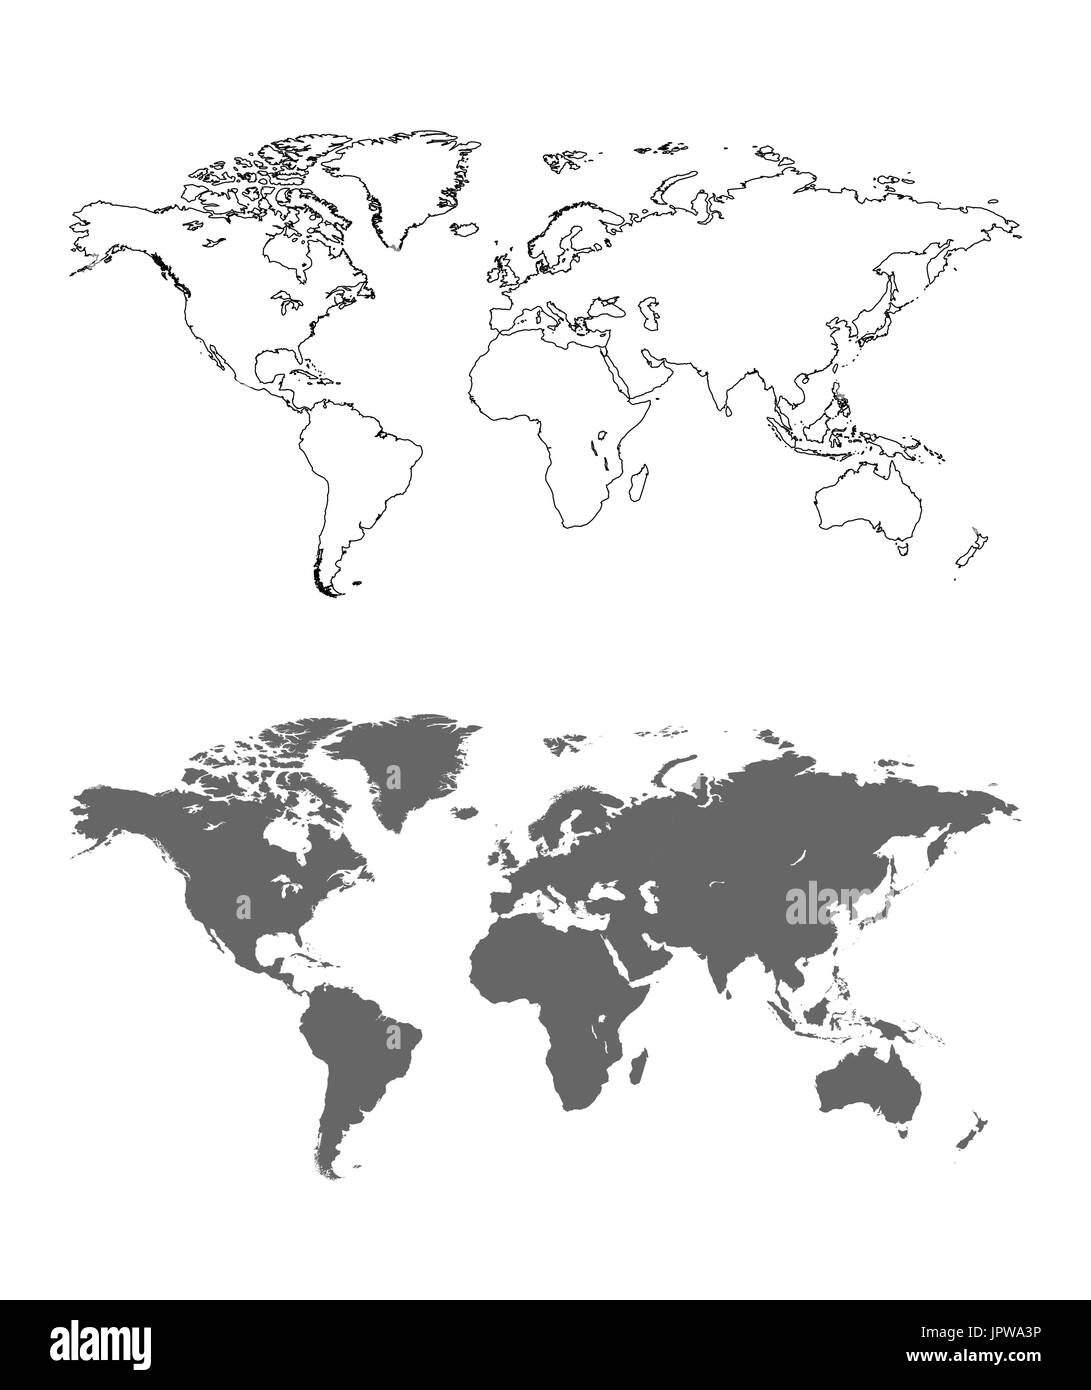 Vector Outline of the world map - Stock Image